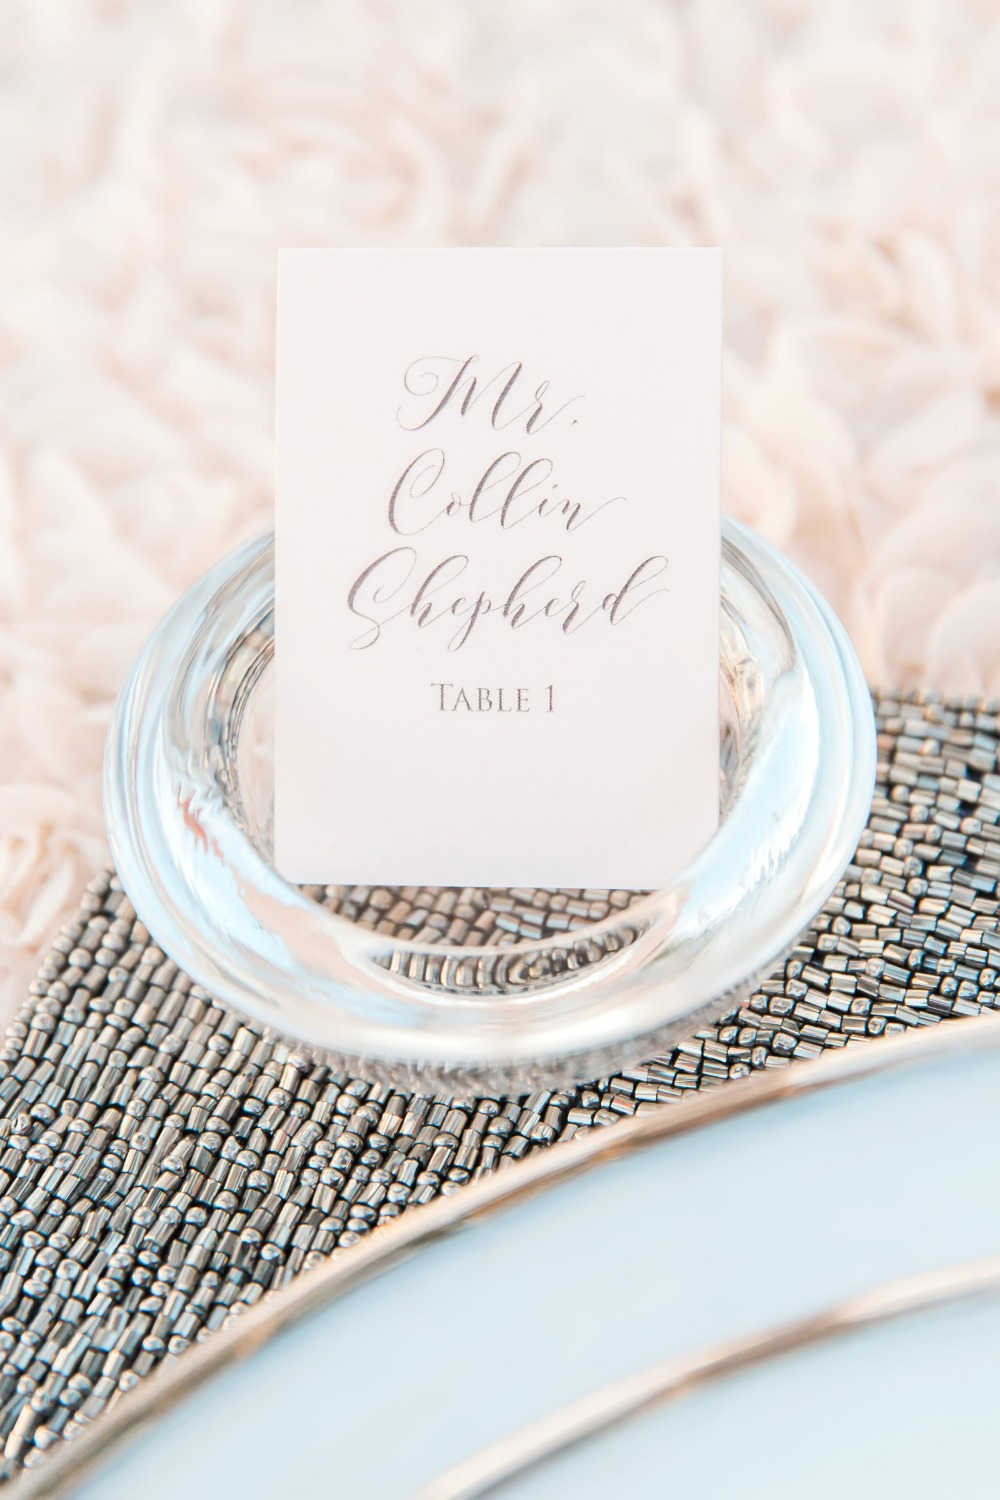 Blush place card with calligraphy